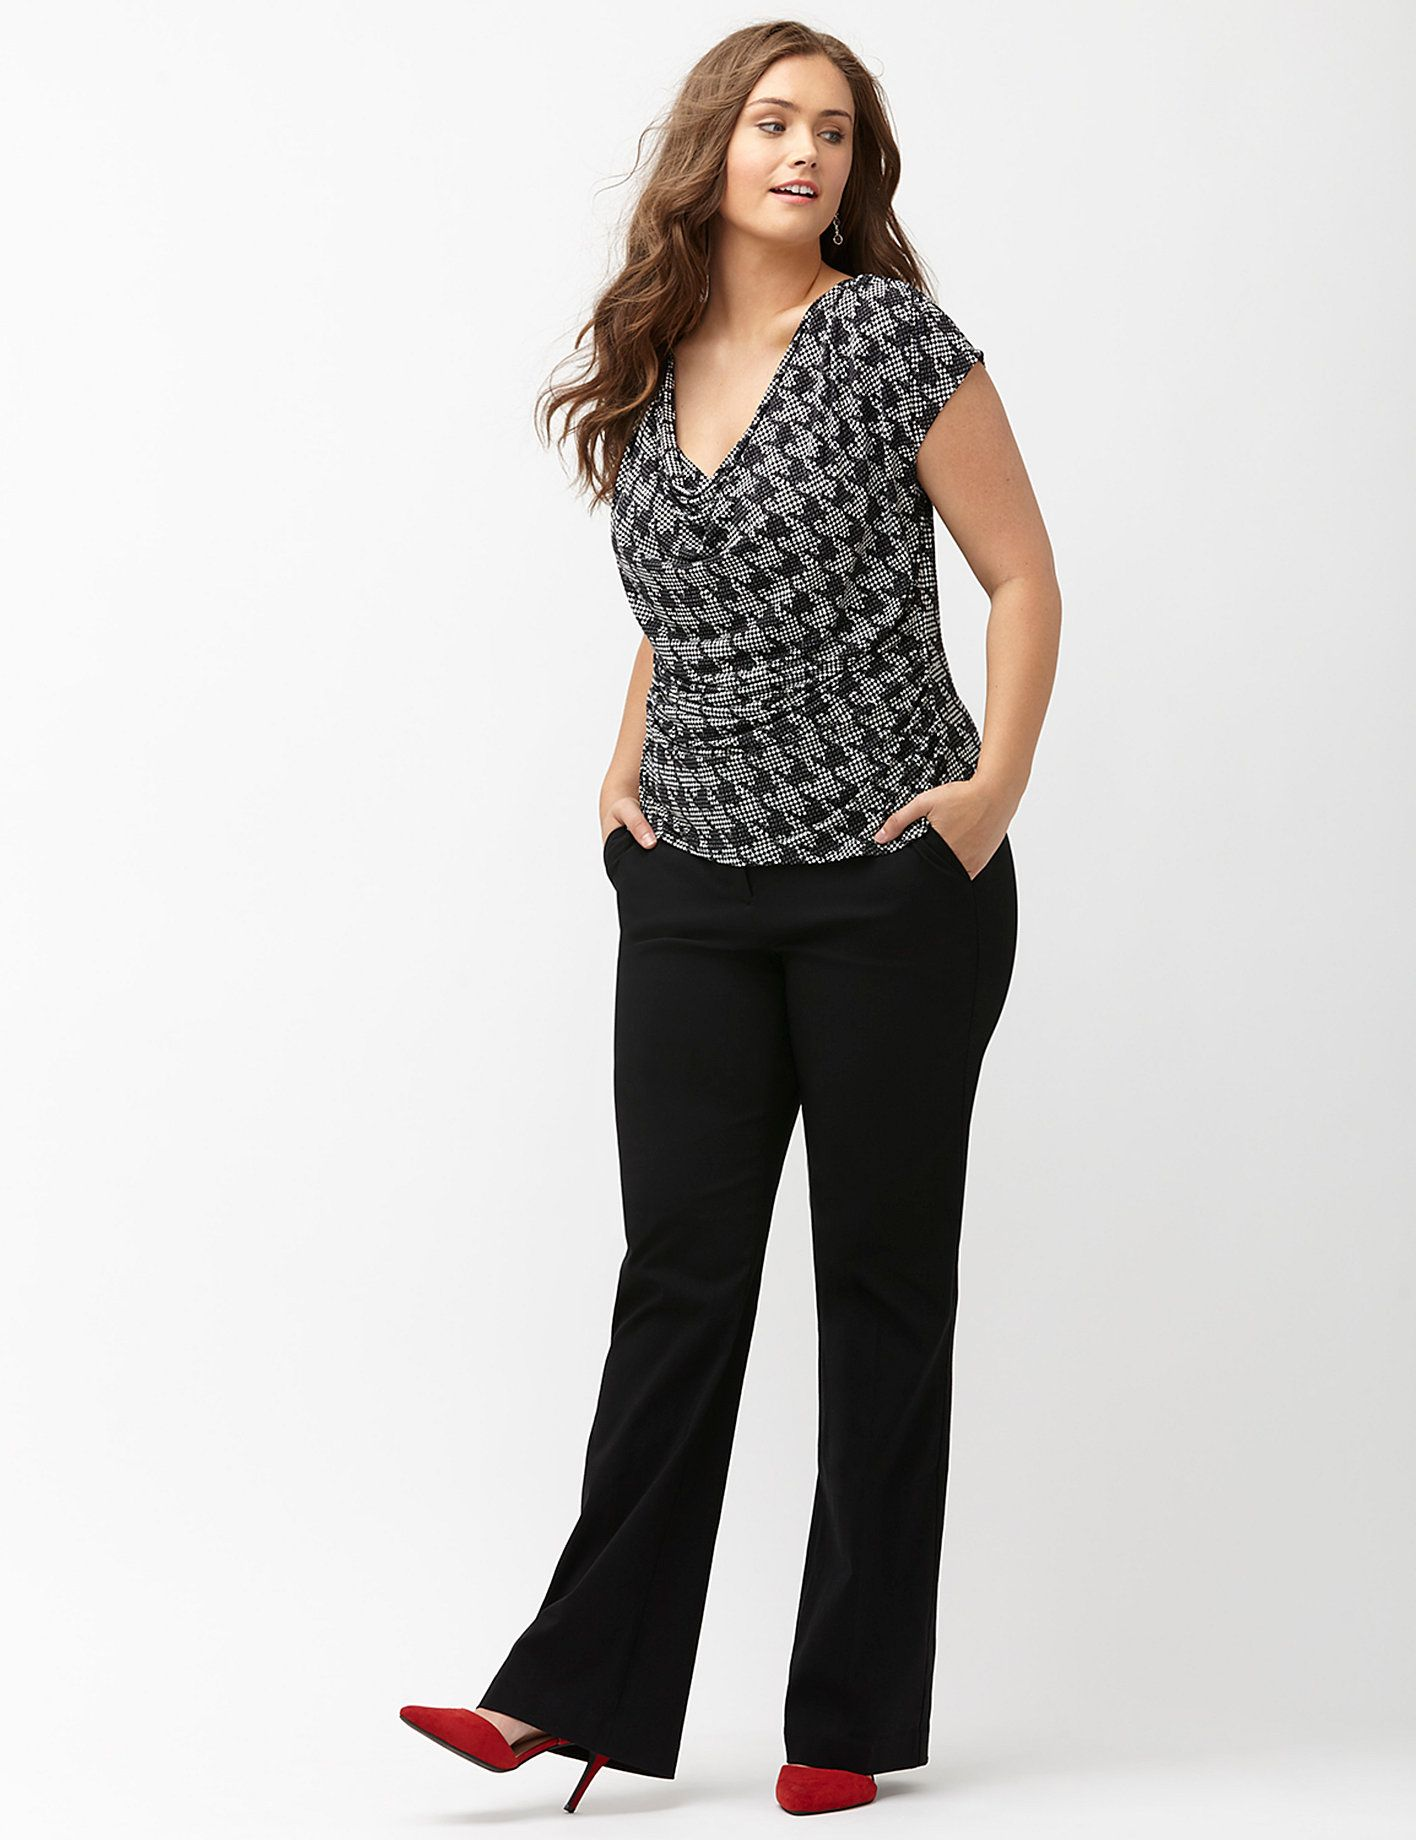 3331d27653d1 Plus Size Pant Suits & Suit Separates for Women | Lane Bryant ...